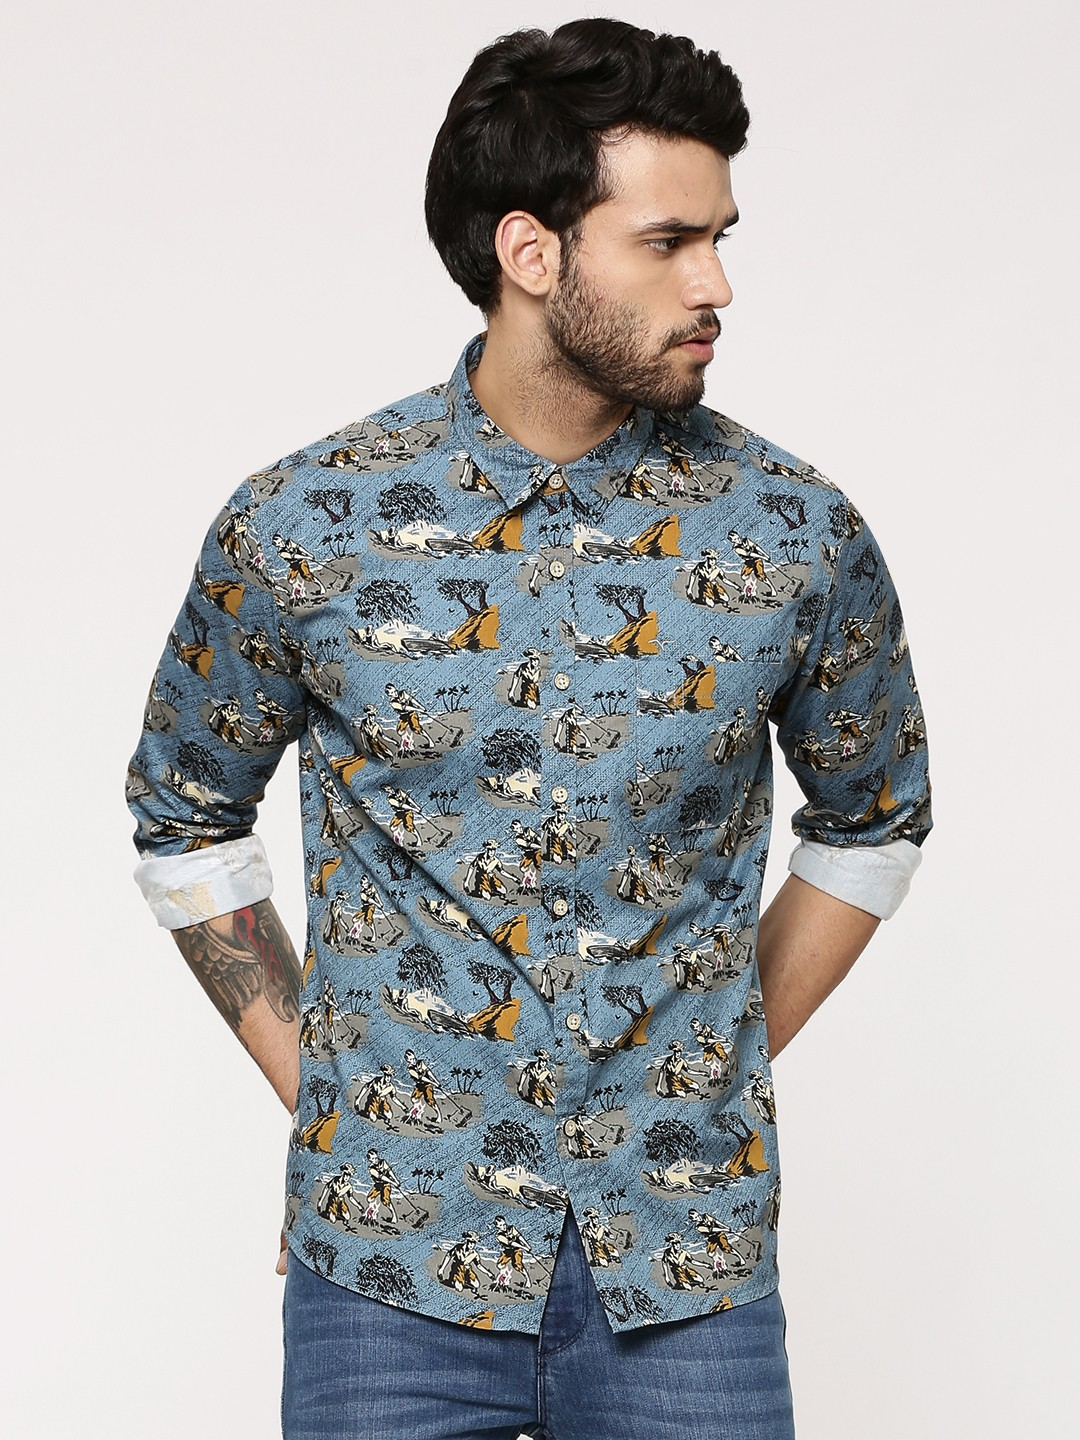 Buy flying machine stone age printed shirt for men men 39 s for Machine to print shirts